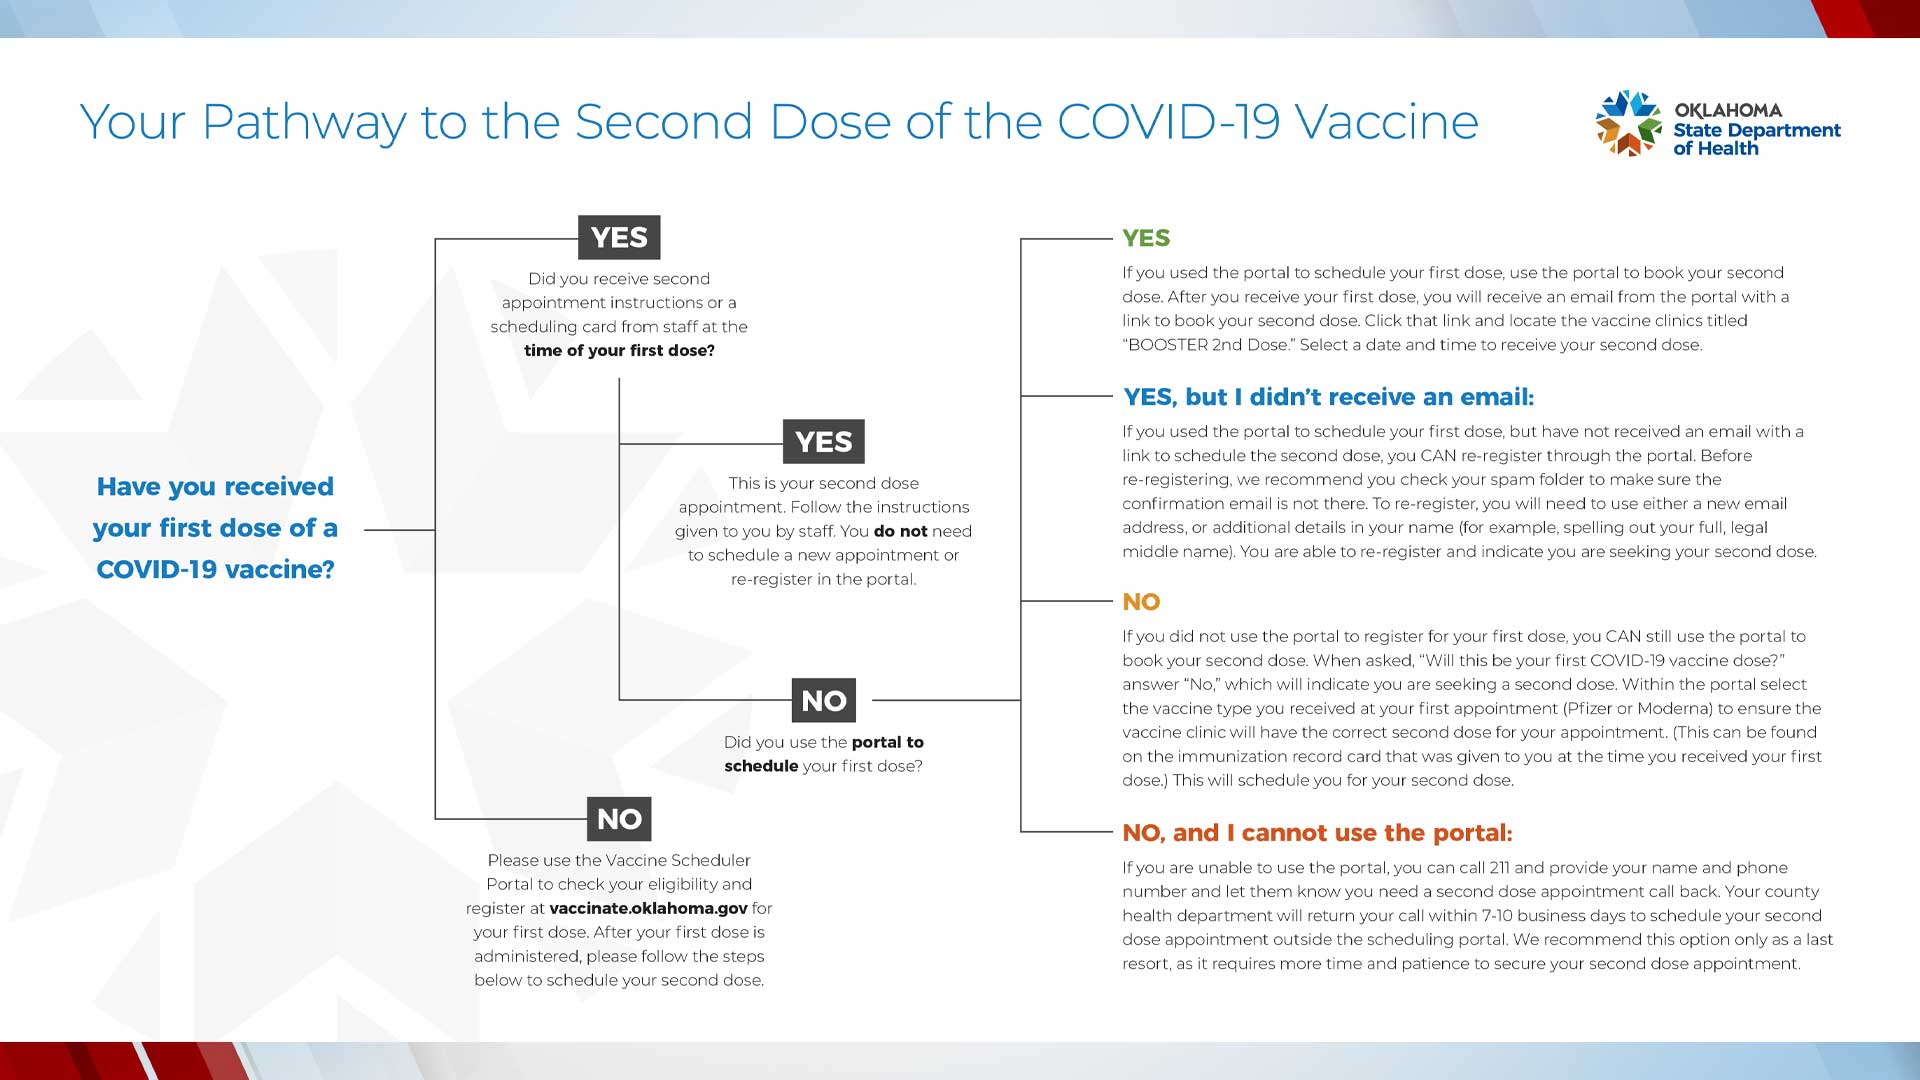 How To Schedule Your Second COVID-19 Vaccine, According To OSDH